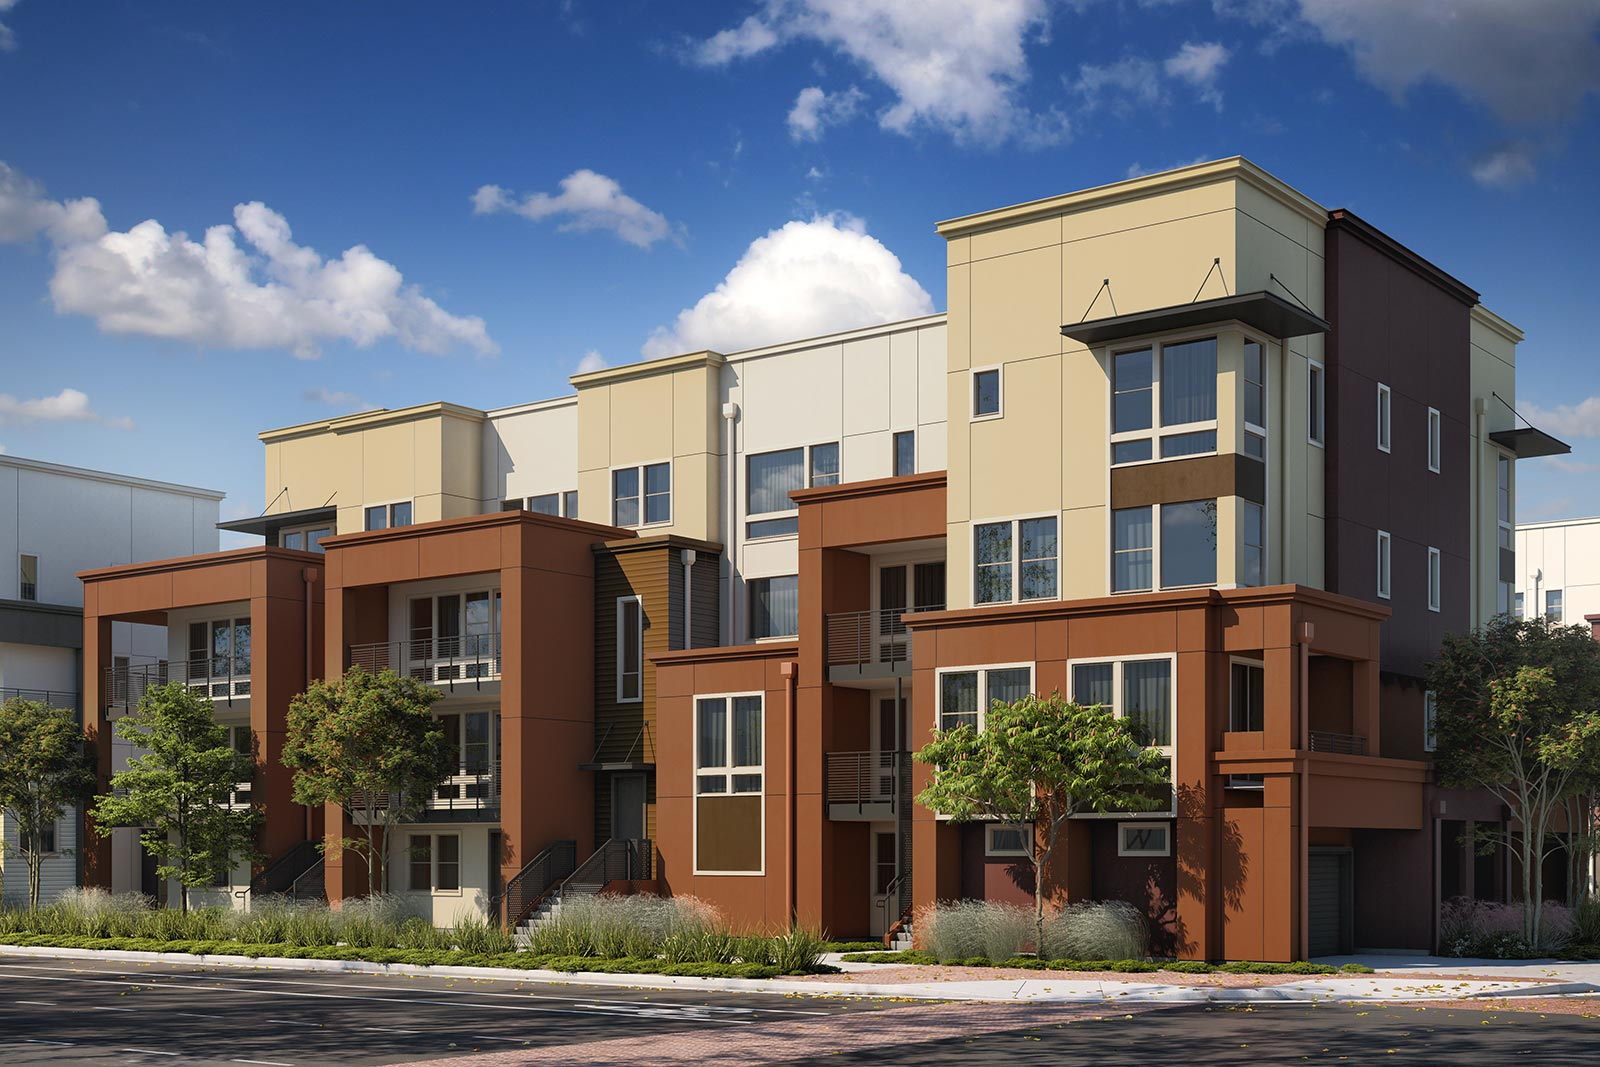 Skyline at Boulevard - Real estate for sale in Dublin, CA